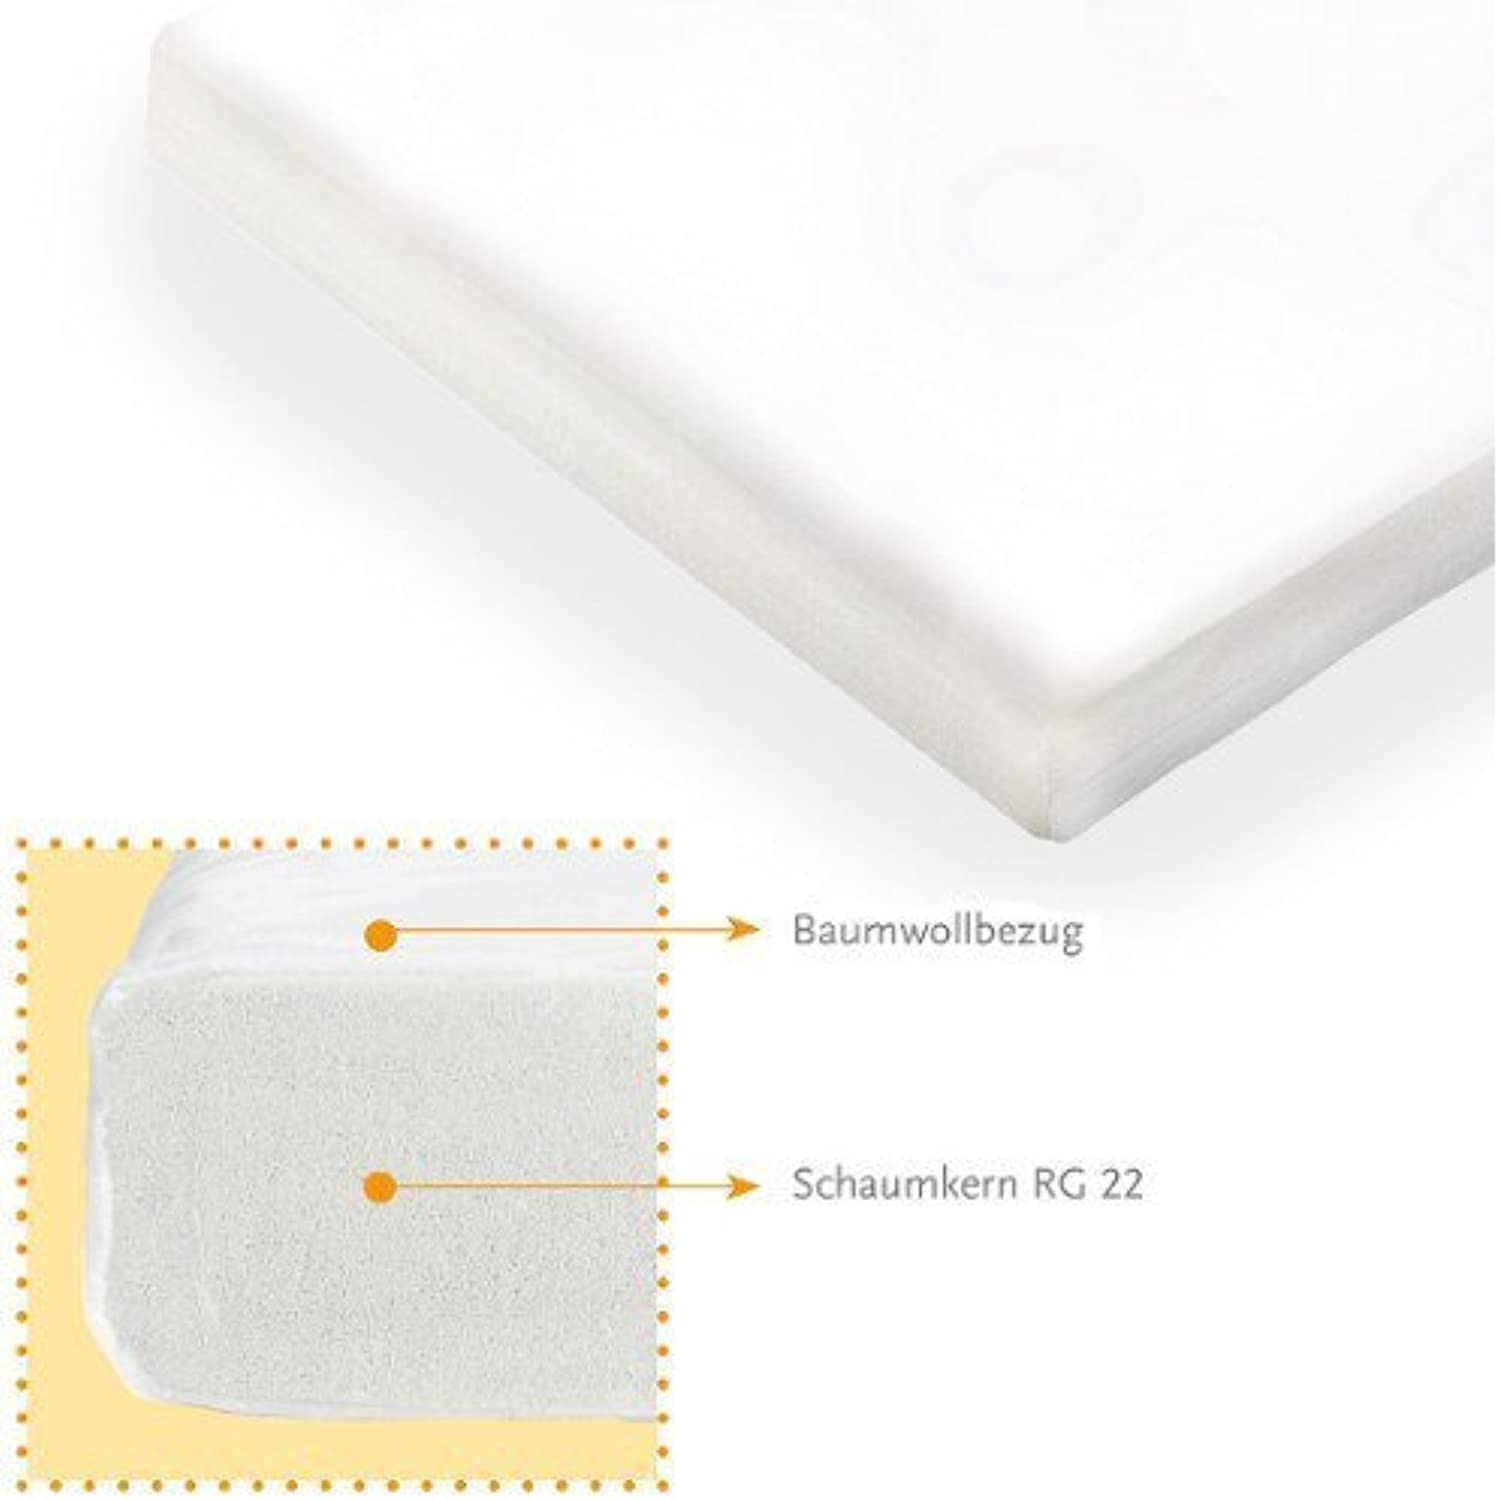 Classic Standard Baby Bed Junior Bed Mattress, 140x70cm, Suitable for Allergy Sufferers, mittelfester Foam Core